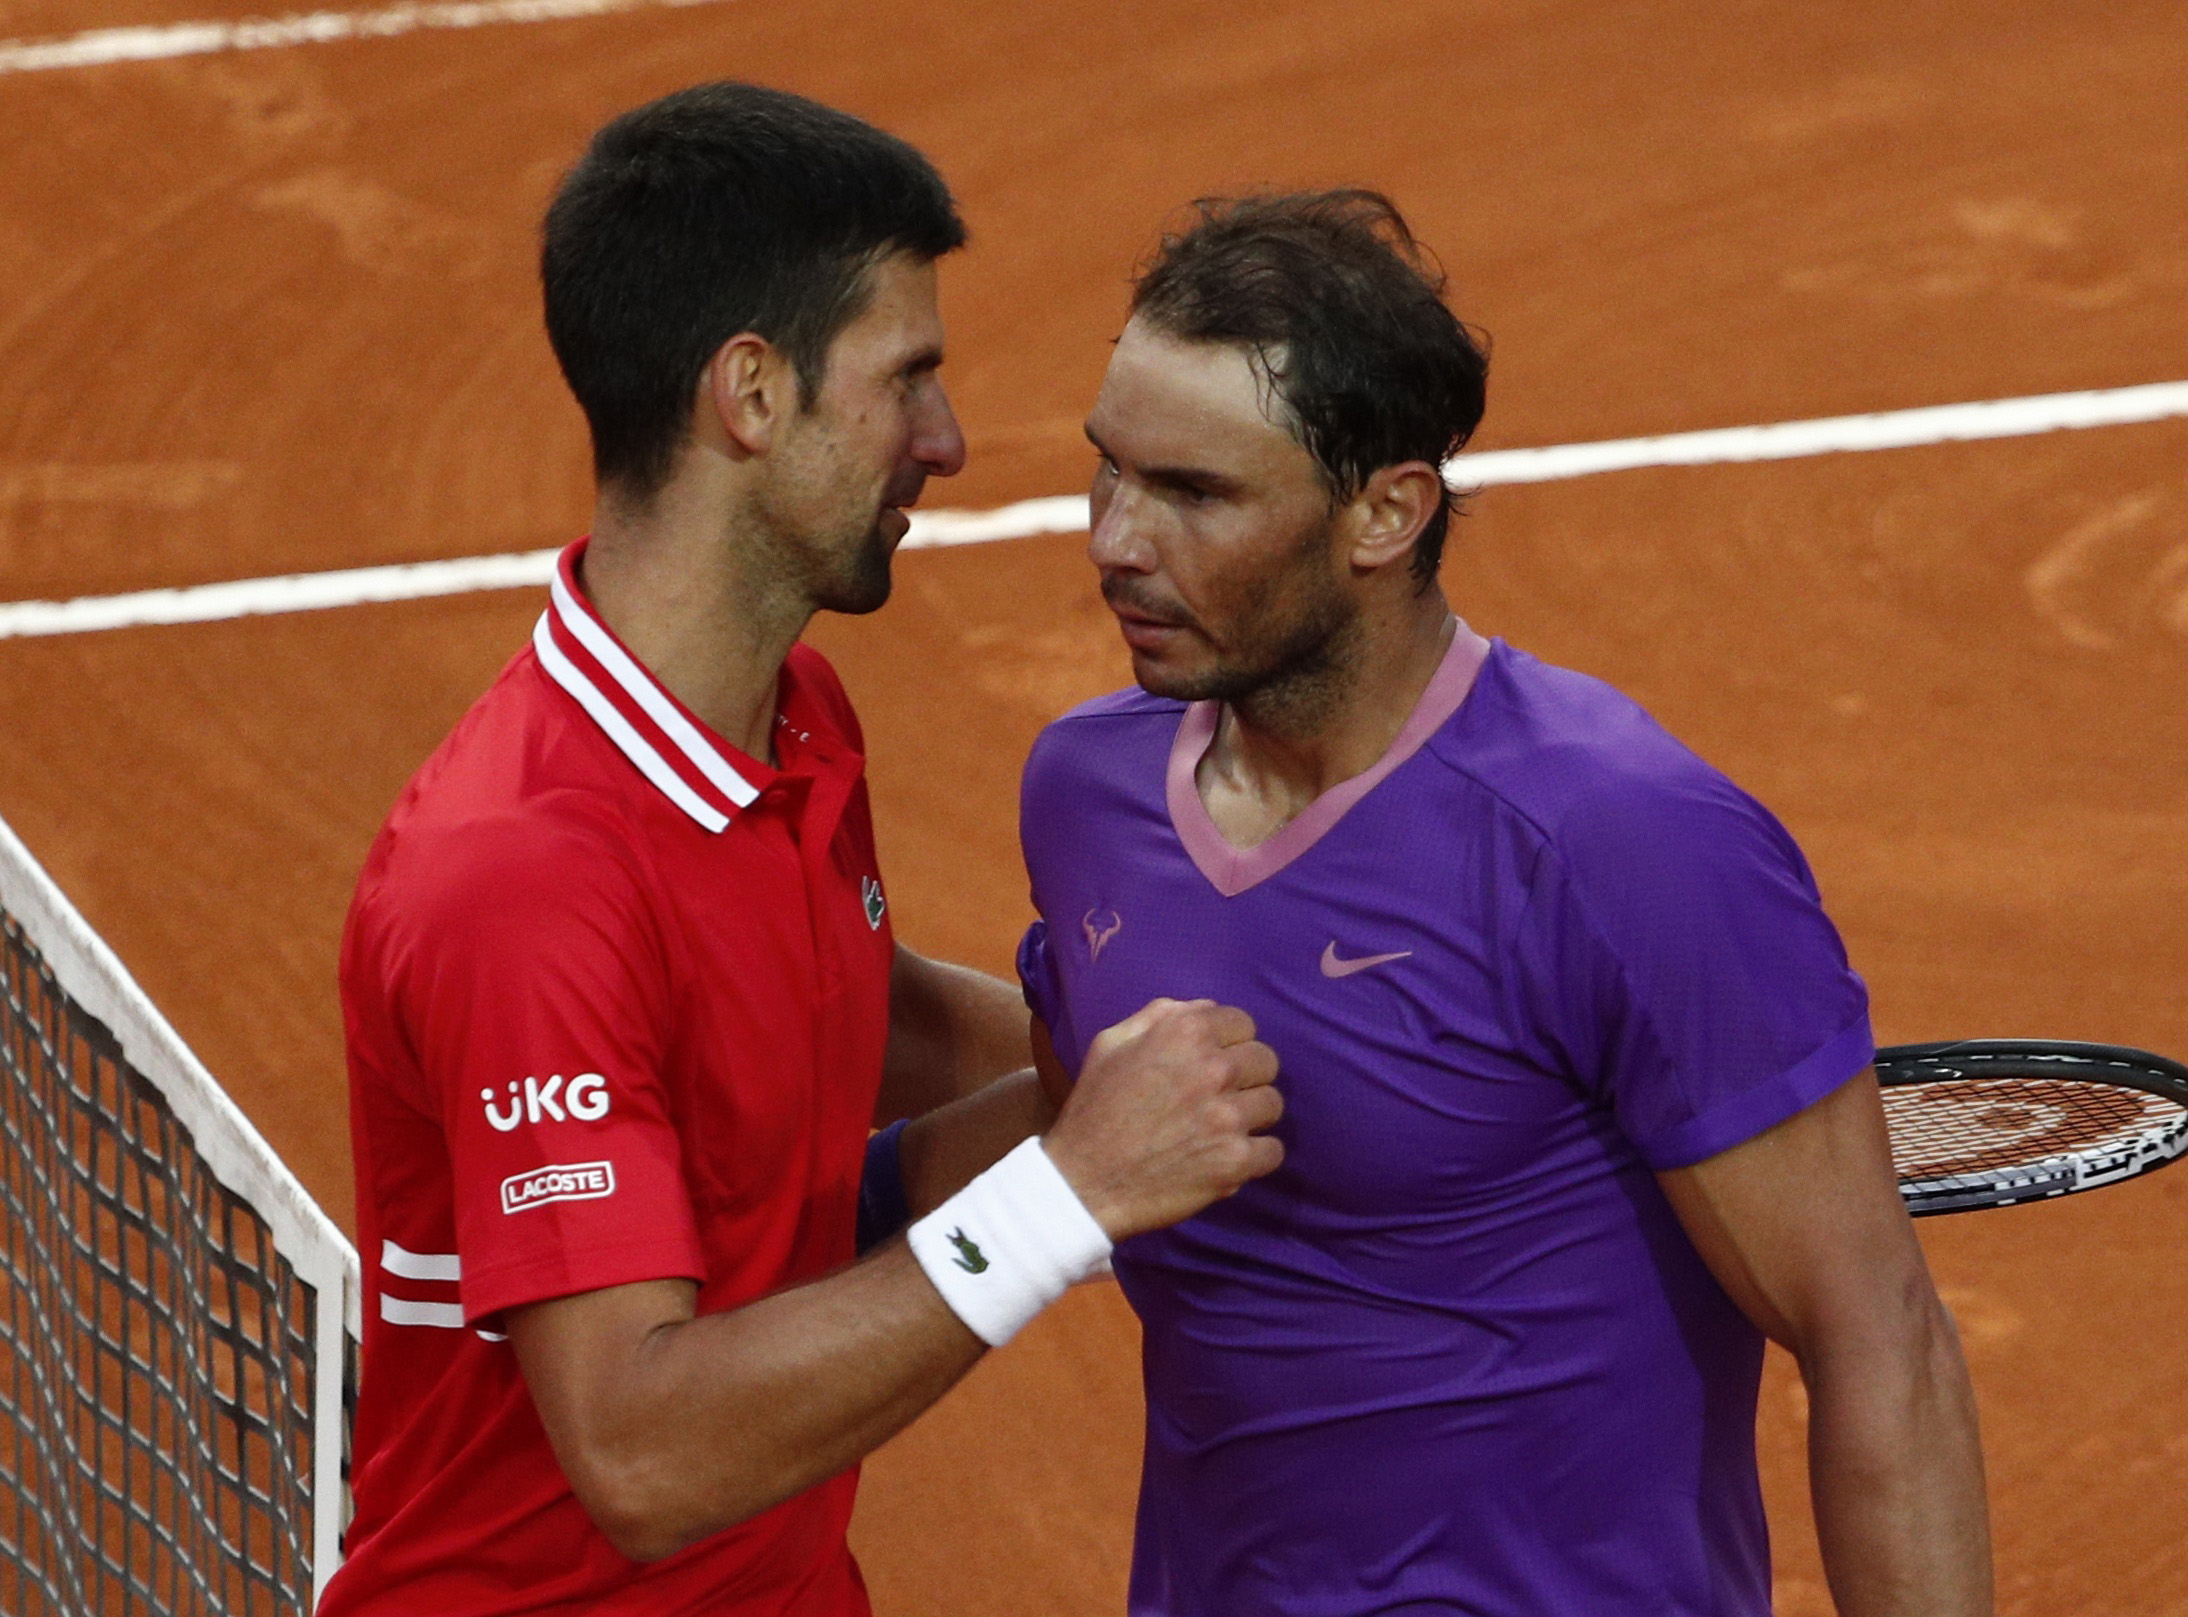 Tennis - ATP Masters 1000 - Italian Open - Foro Italico, Rome, Italy - May 16, 2021 Spain's Rafael Nadal shakes hands with Serbia's Novak Djokovic after winning the final REUTERS/Guglielmo Mangiapane